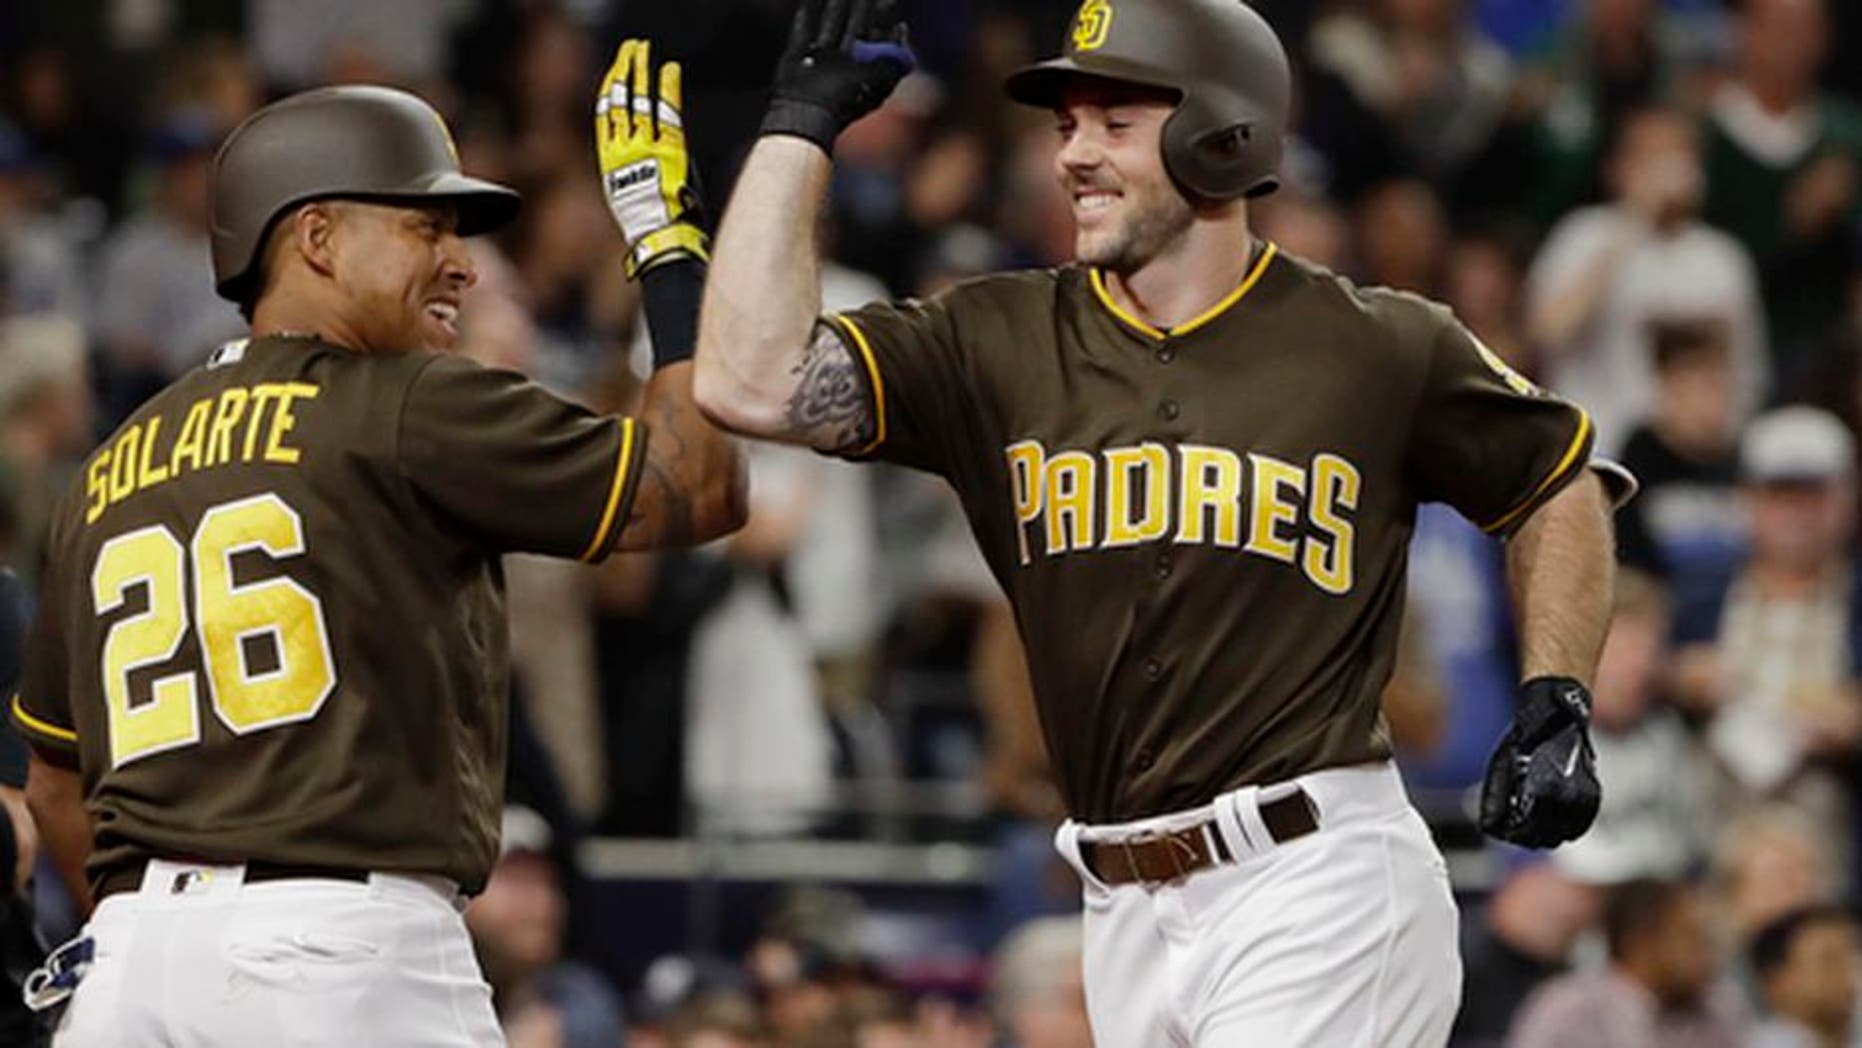 San Diego Padres' Matt Szczur, right, is greeted by Yangervis Solarte after hitting a home run during the seventh inning of the team's baseball game against the Kansas City Royals on Friday, June 9, 2017, in San Diego. (AP Photo/Gregory Bull)